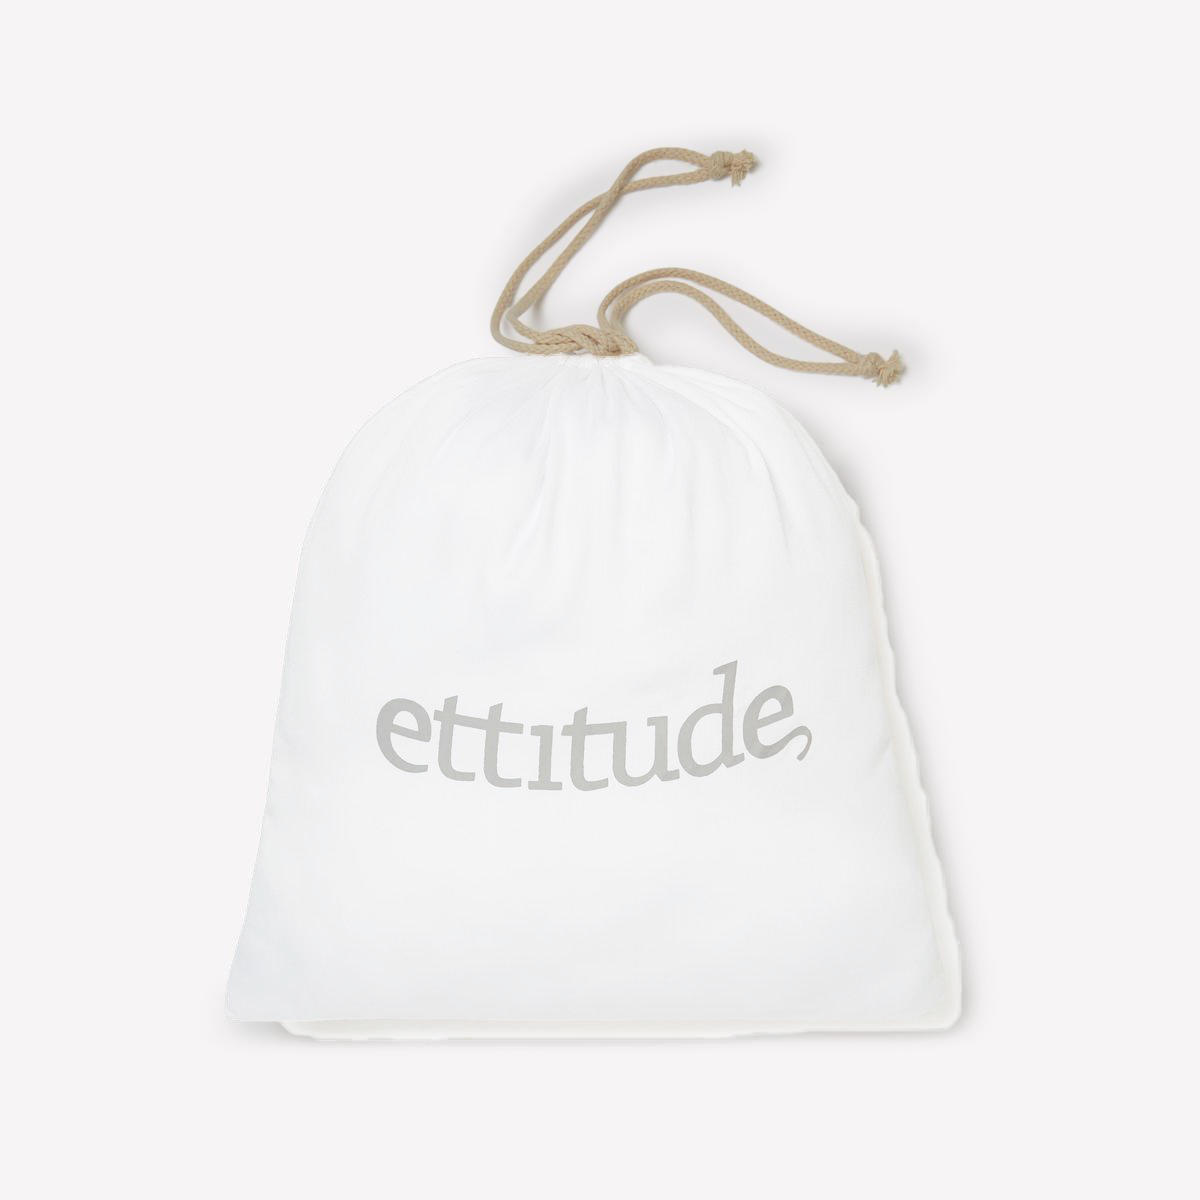 ettitude-white-sheets-1.jpg